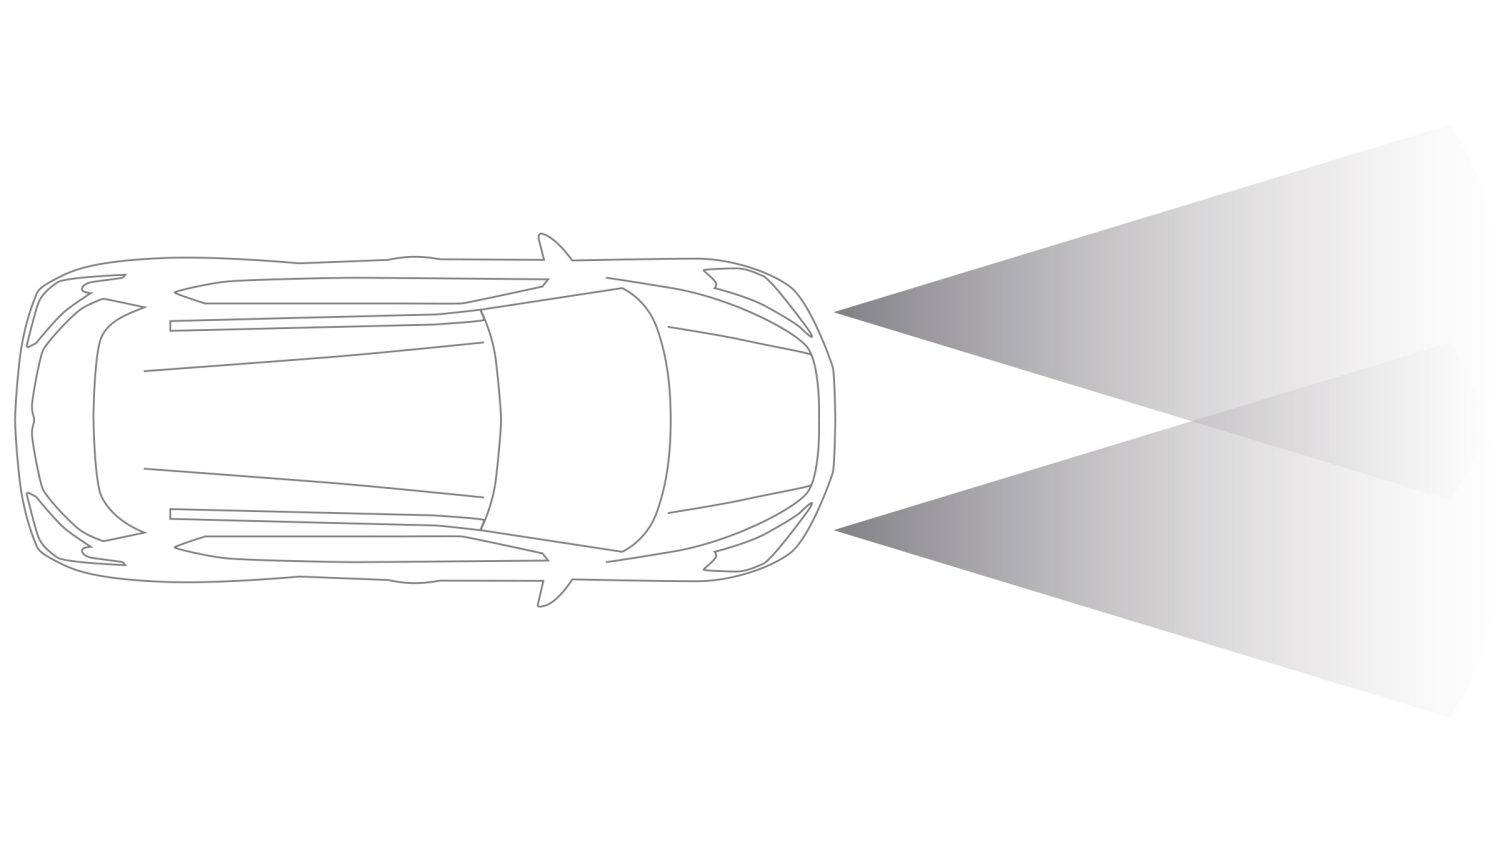 Illustration of a top down view of Kicks